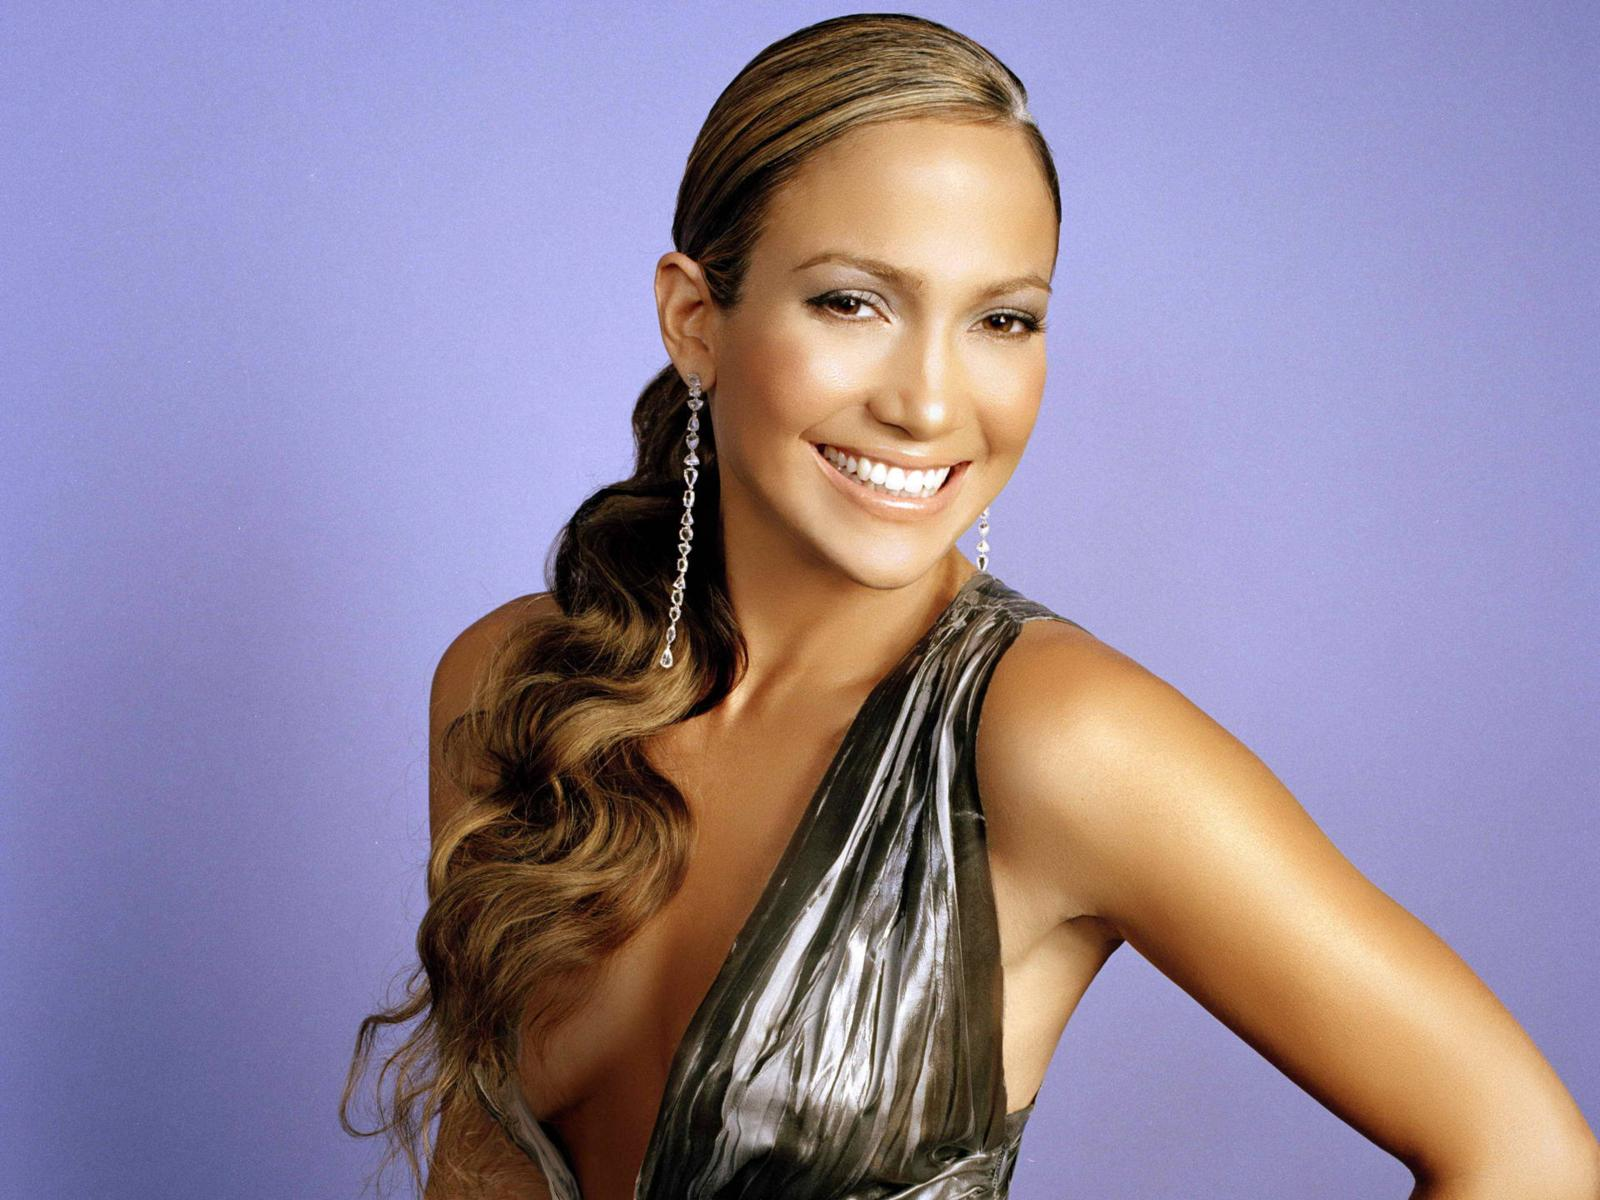 Jennifer Lopez: WALL PAPERS AND PHOTOS